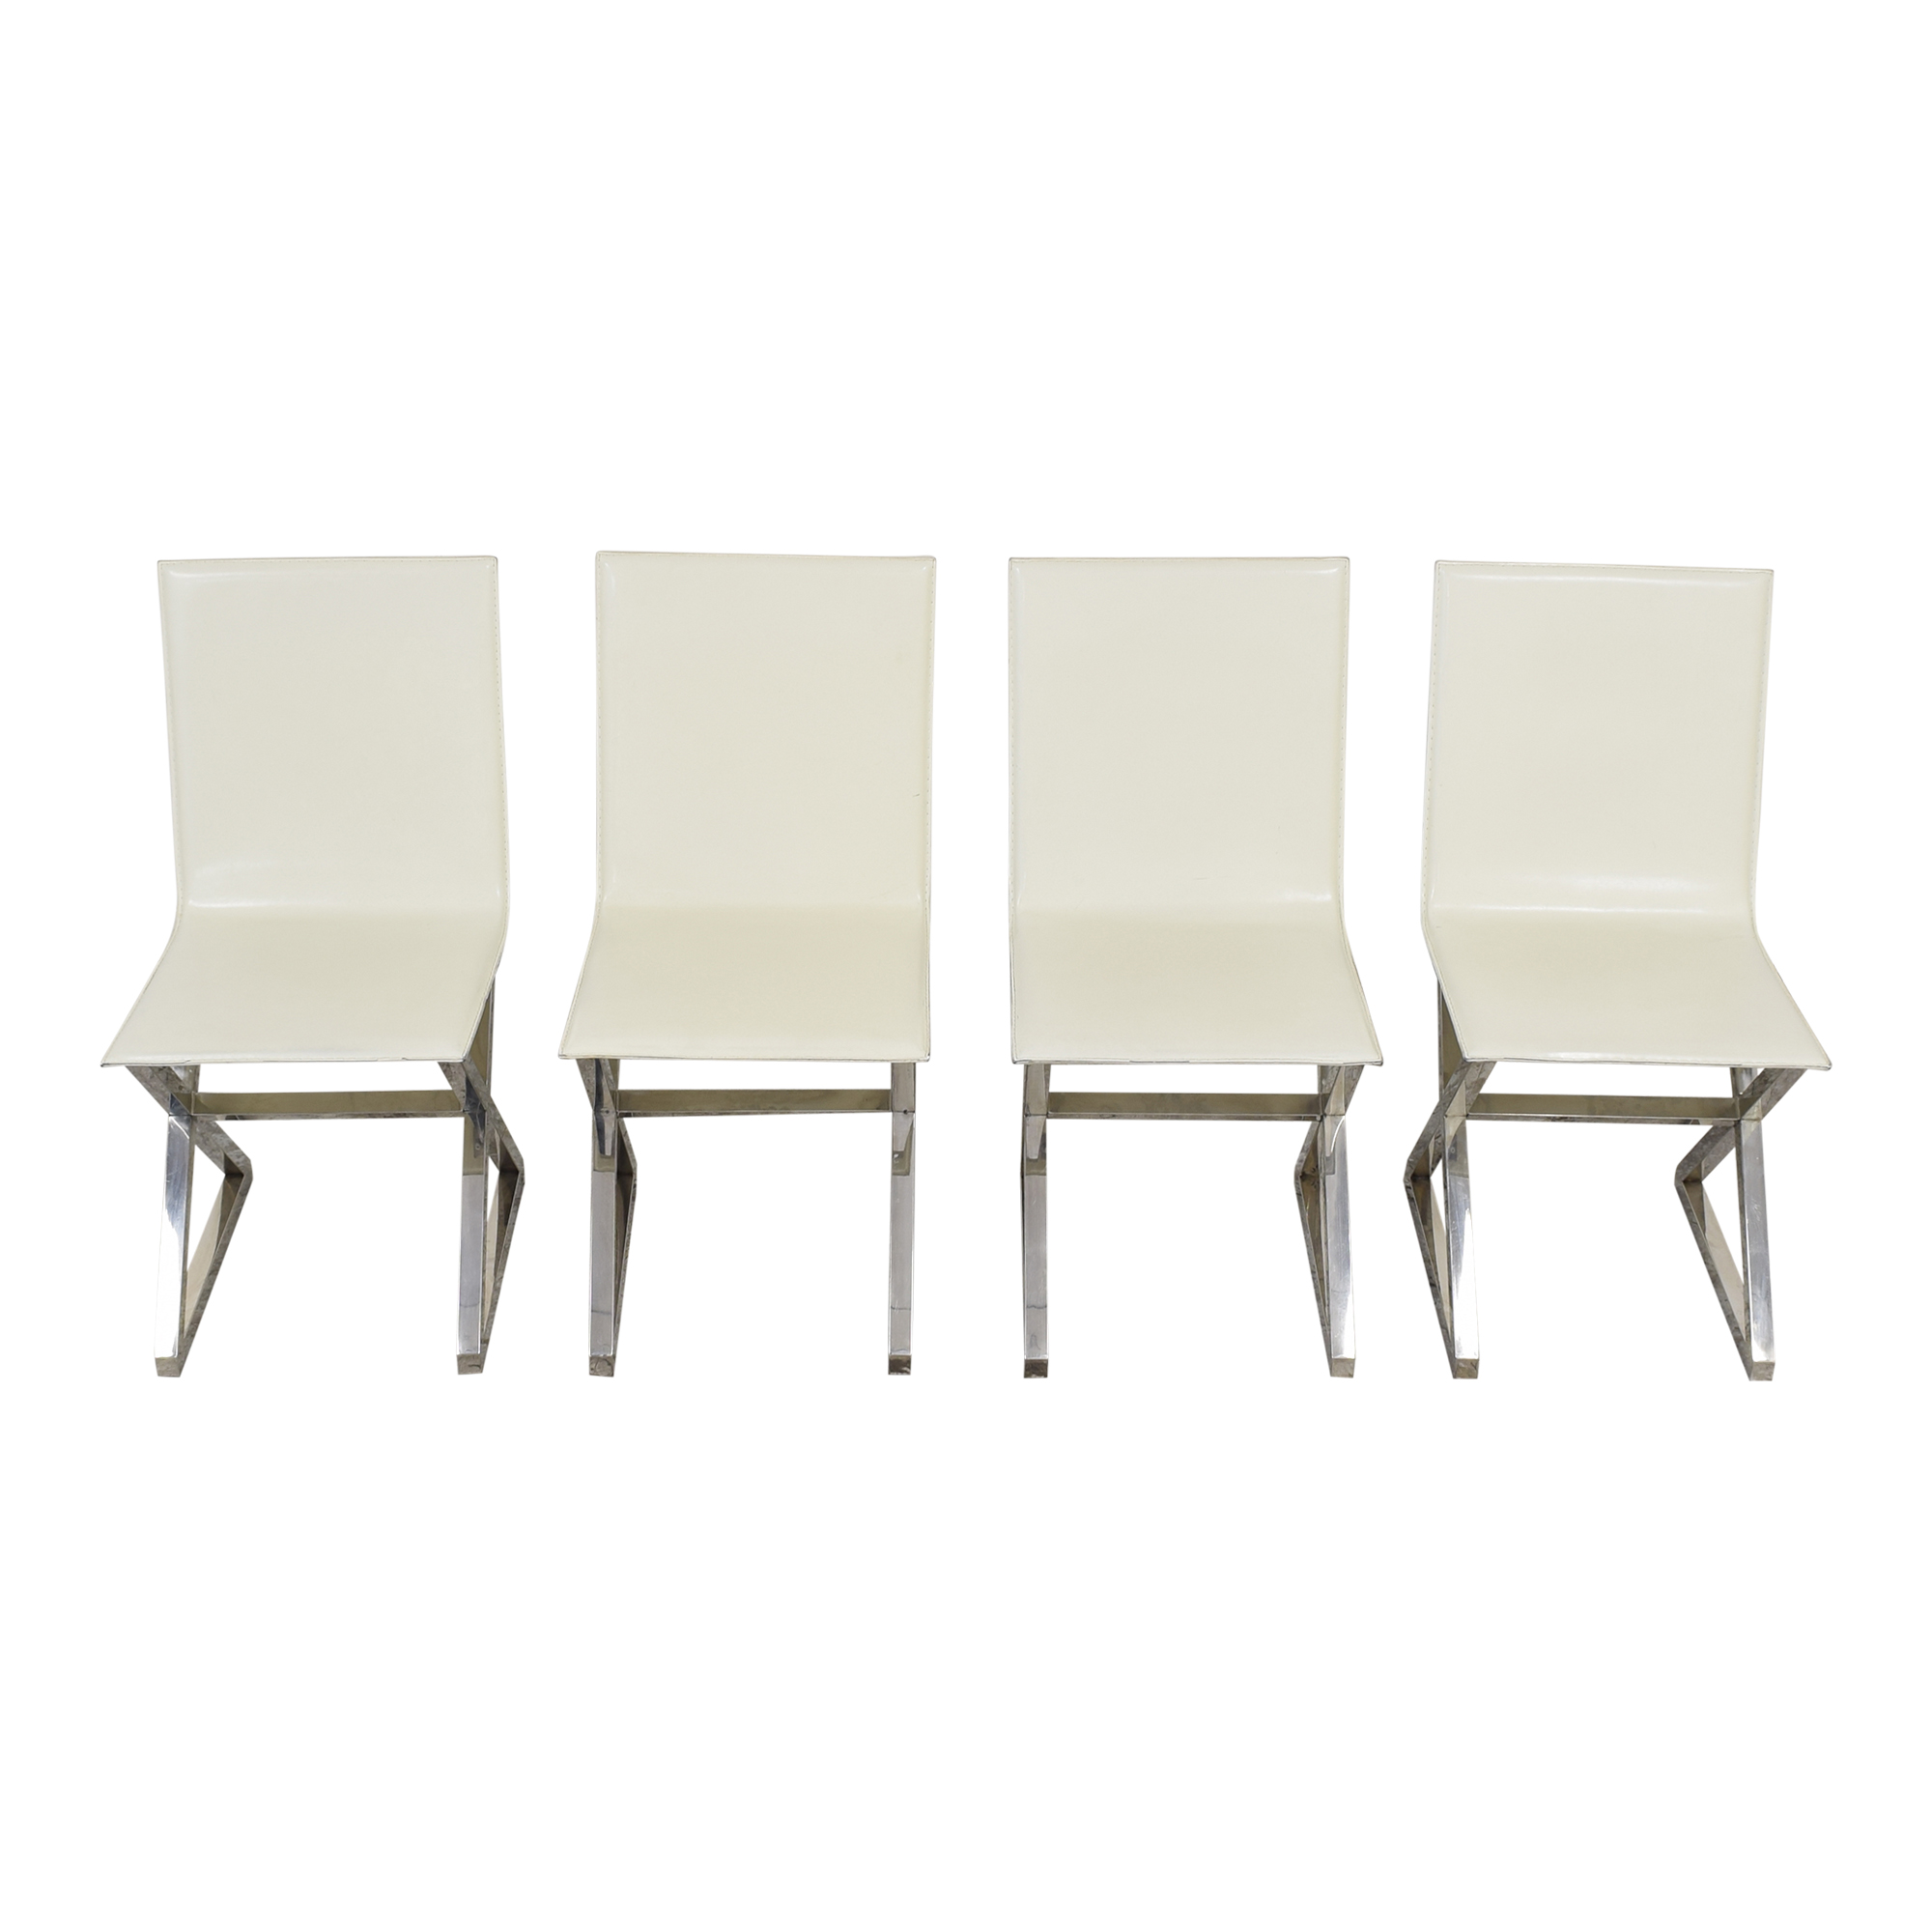 Z Gallerie Z Gallerie Axis Dining Chairs Chairs